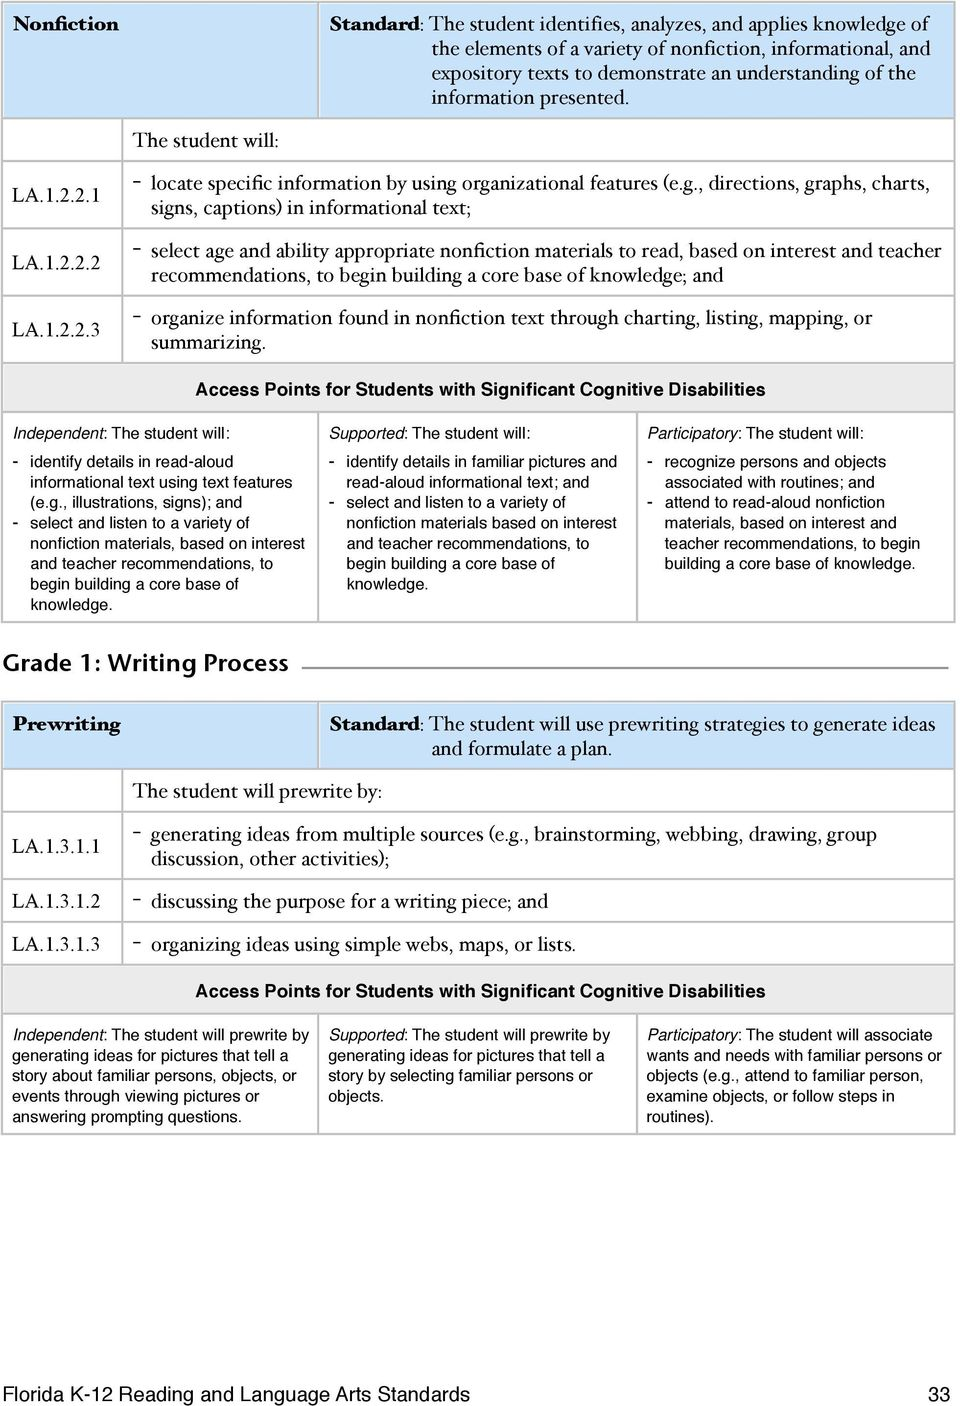 organizational features (e.g., directions, graphs, charts, signs, captions) in informational text; - select age and ability appropriate nonfiction materials to read, based on interest and teacher